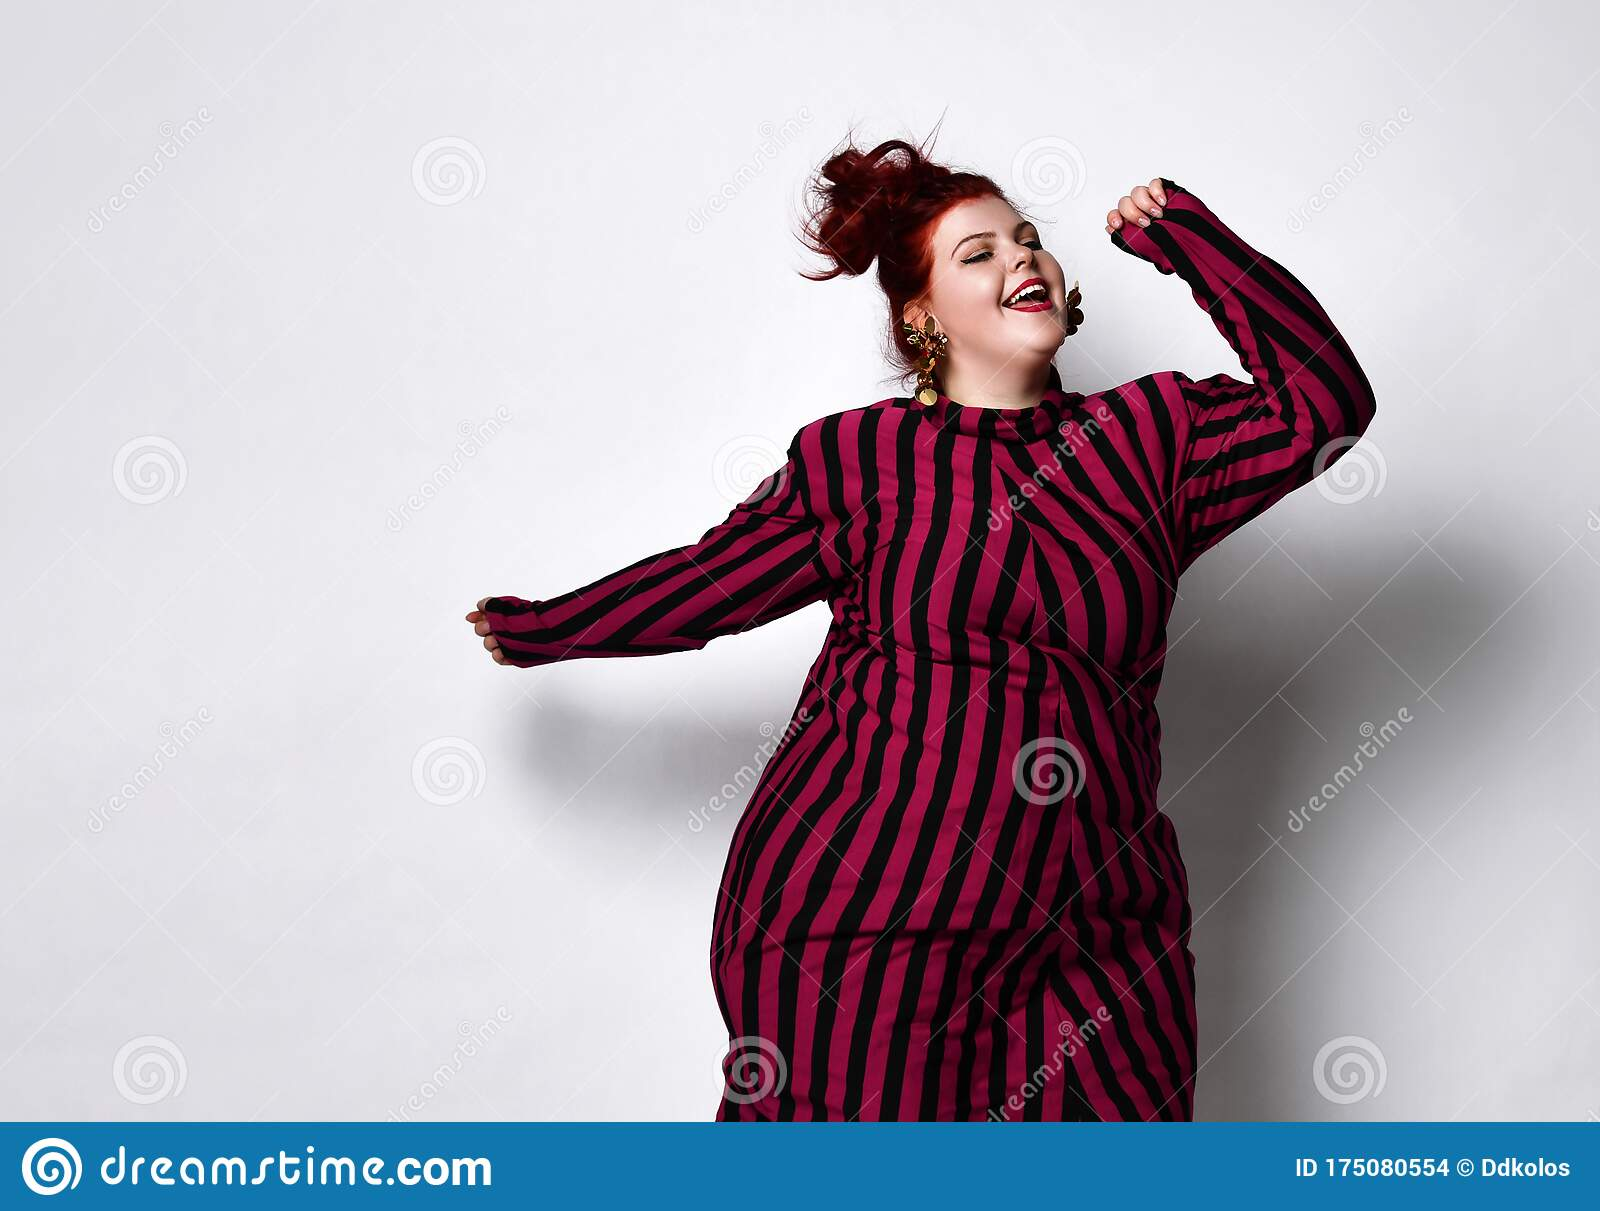 Fat Redhead Girl Pink Dress Pictures